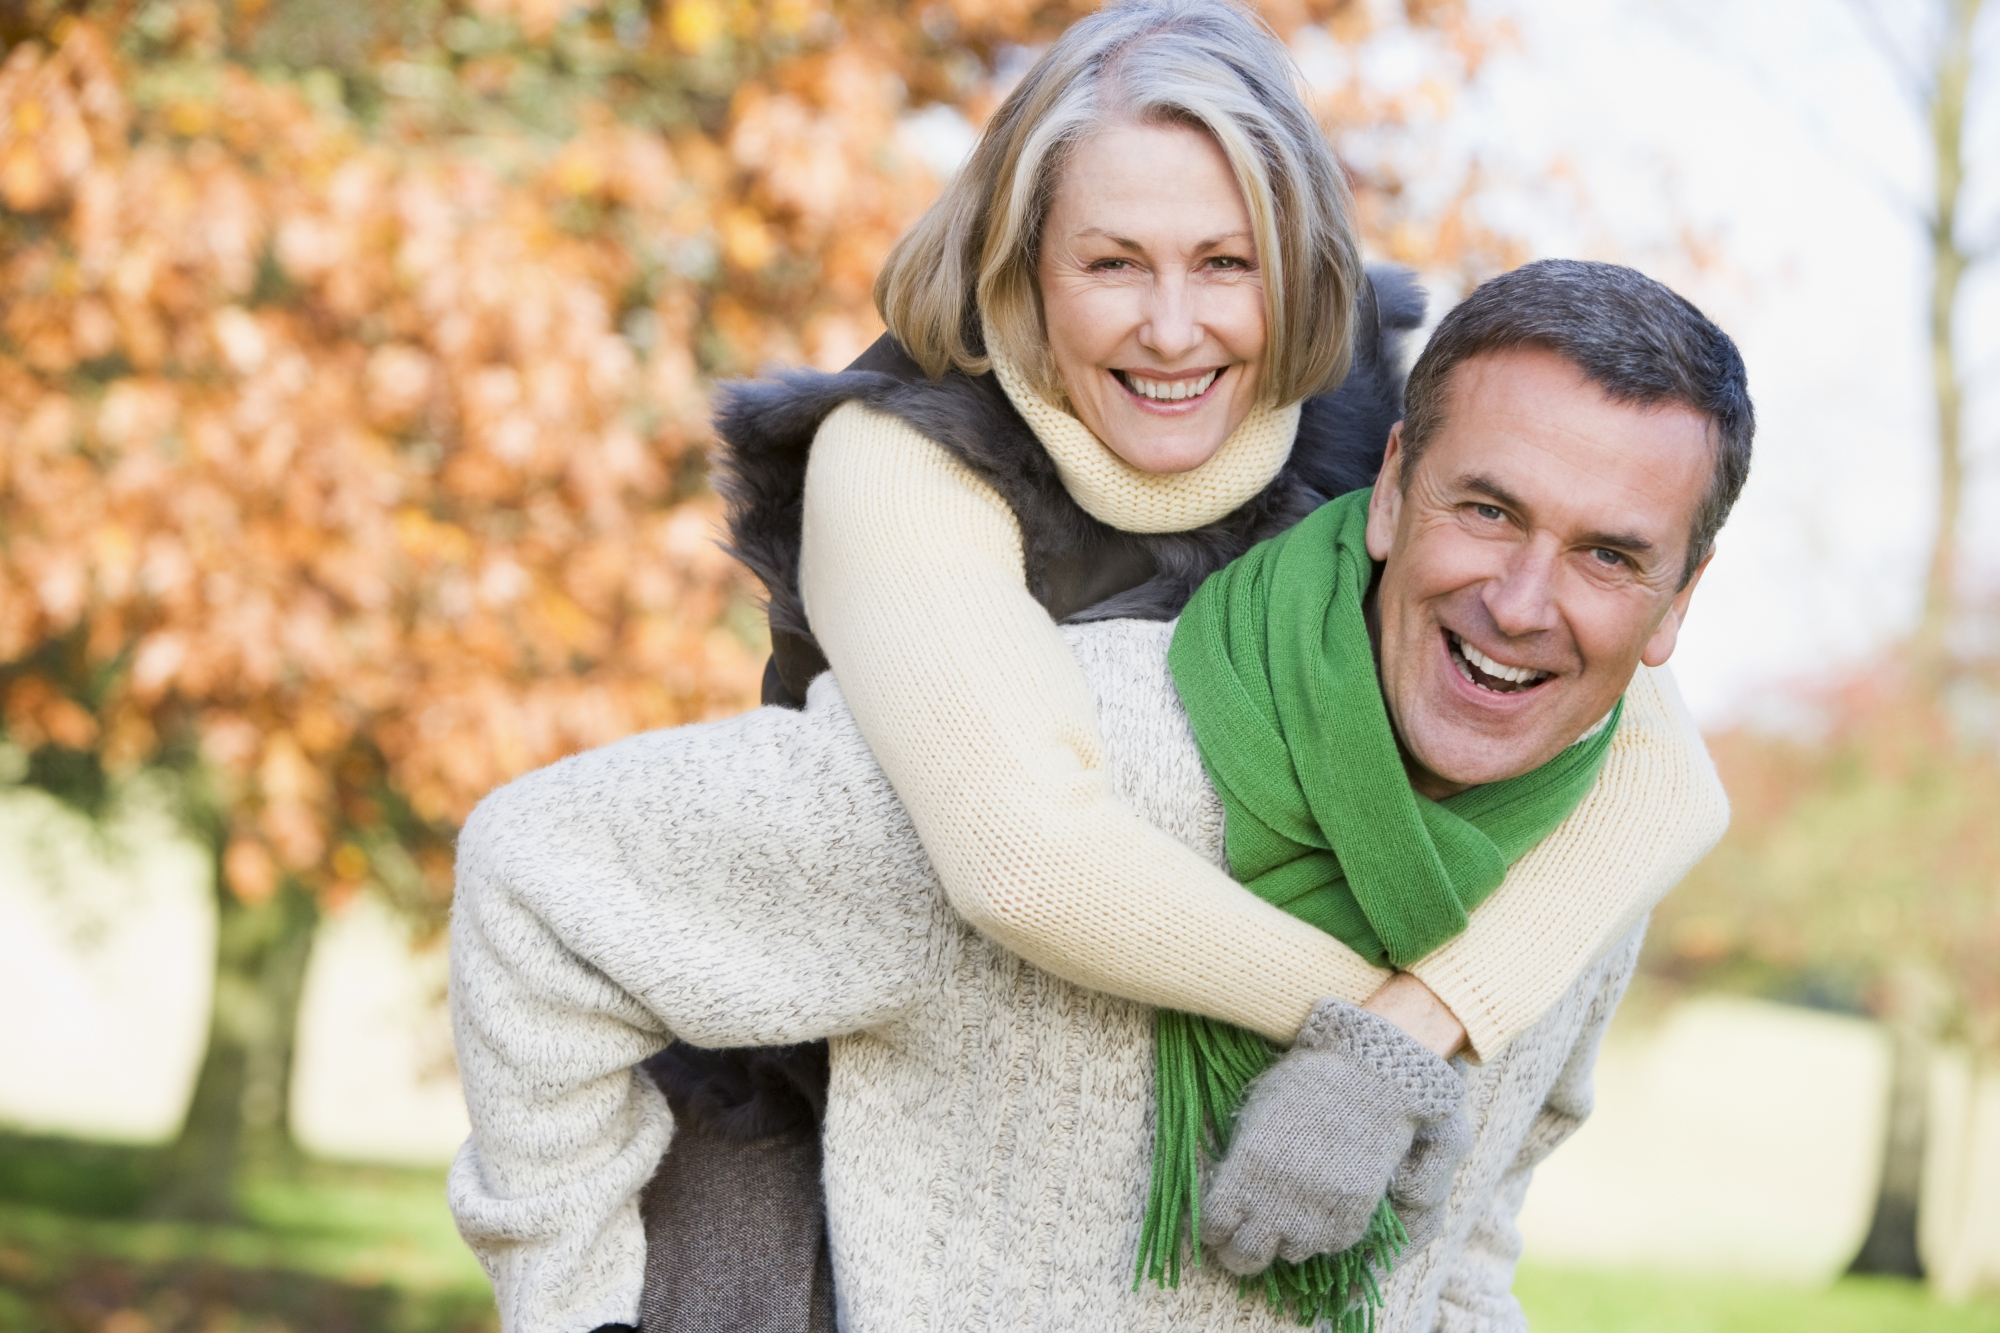 Dental implants can keep your jaw strong and smile intact | Dr. John Schmid